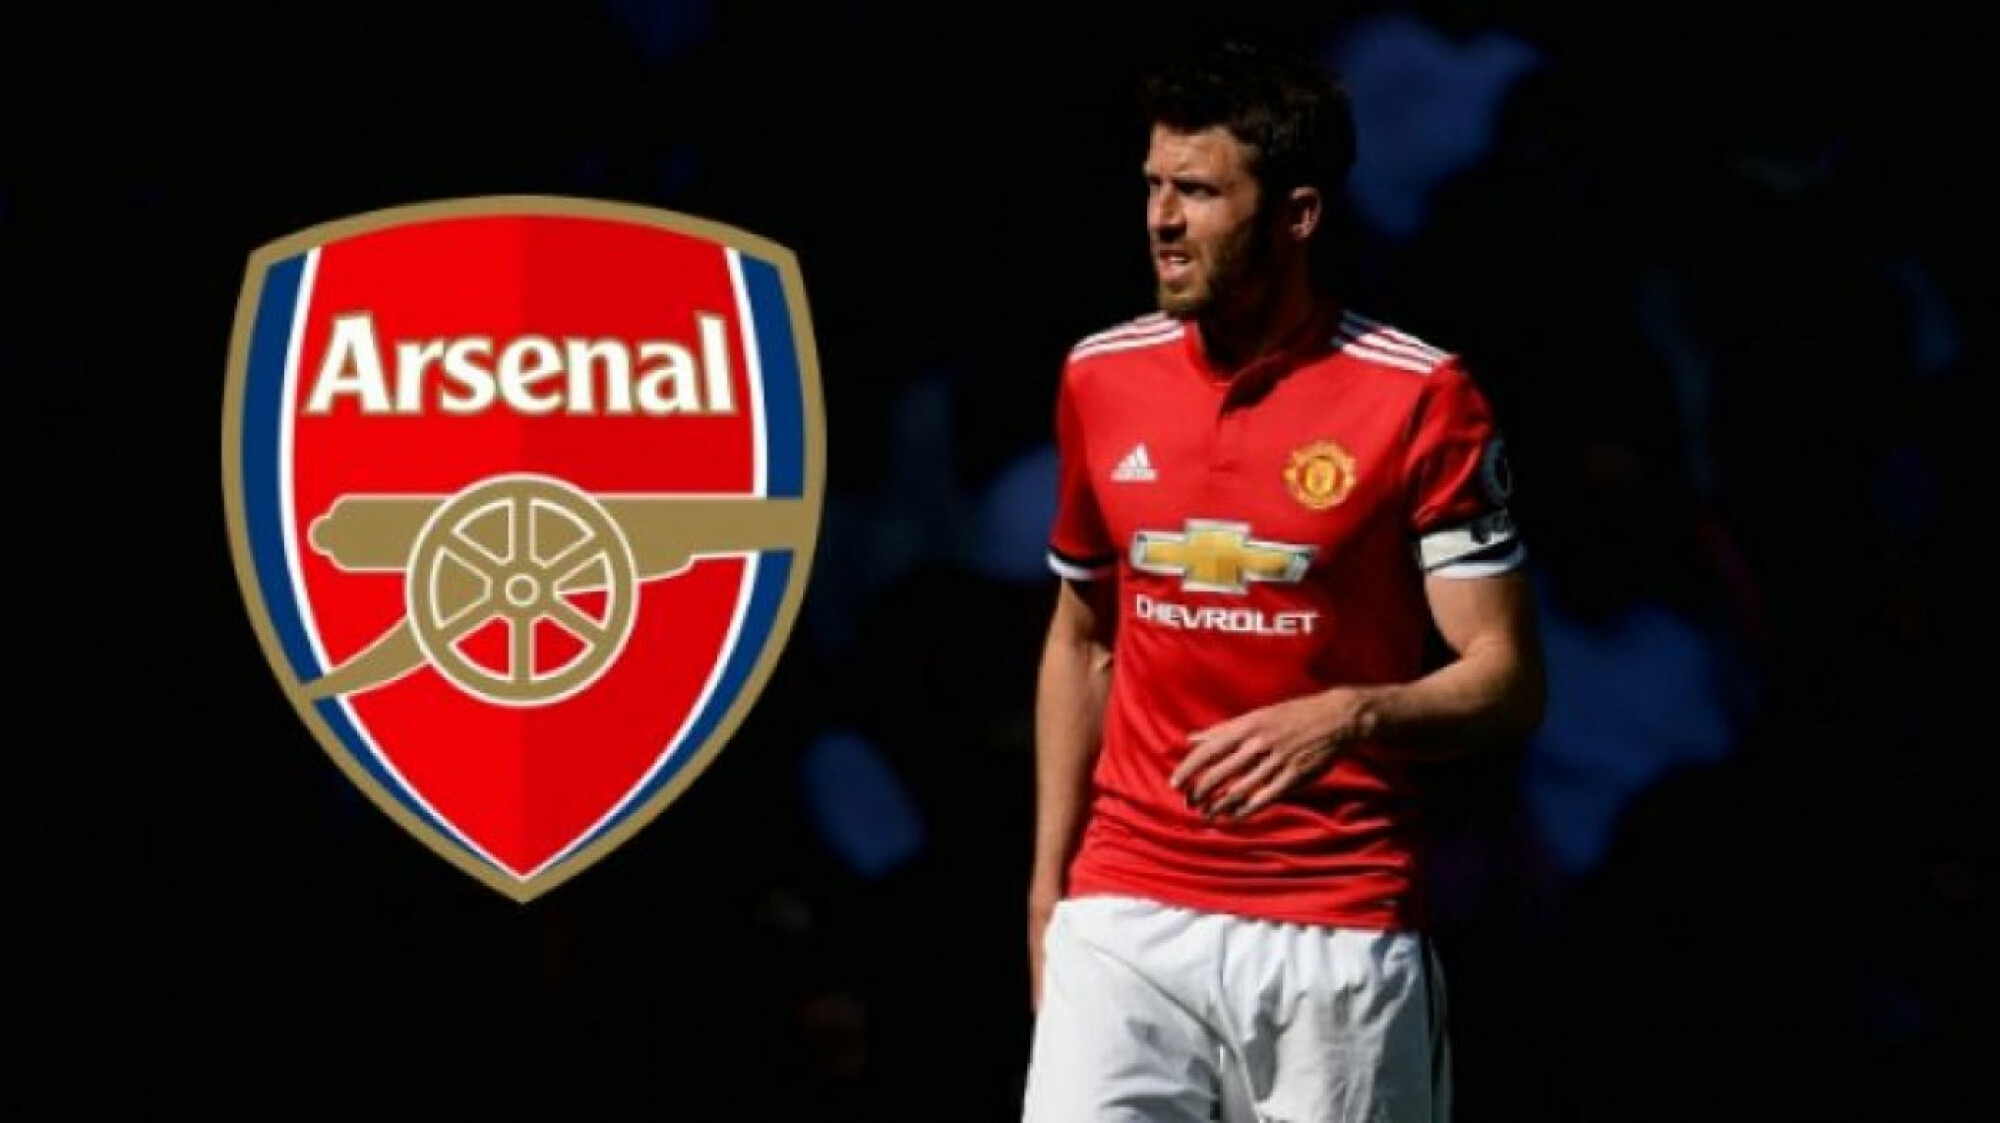 Michael Carrick almost joined Arsenal!